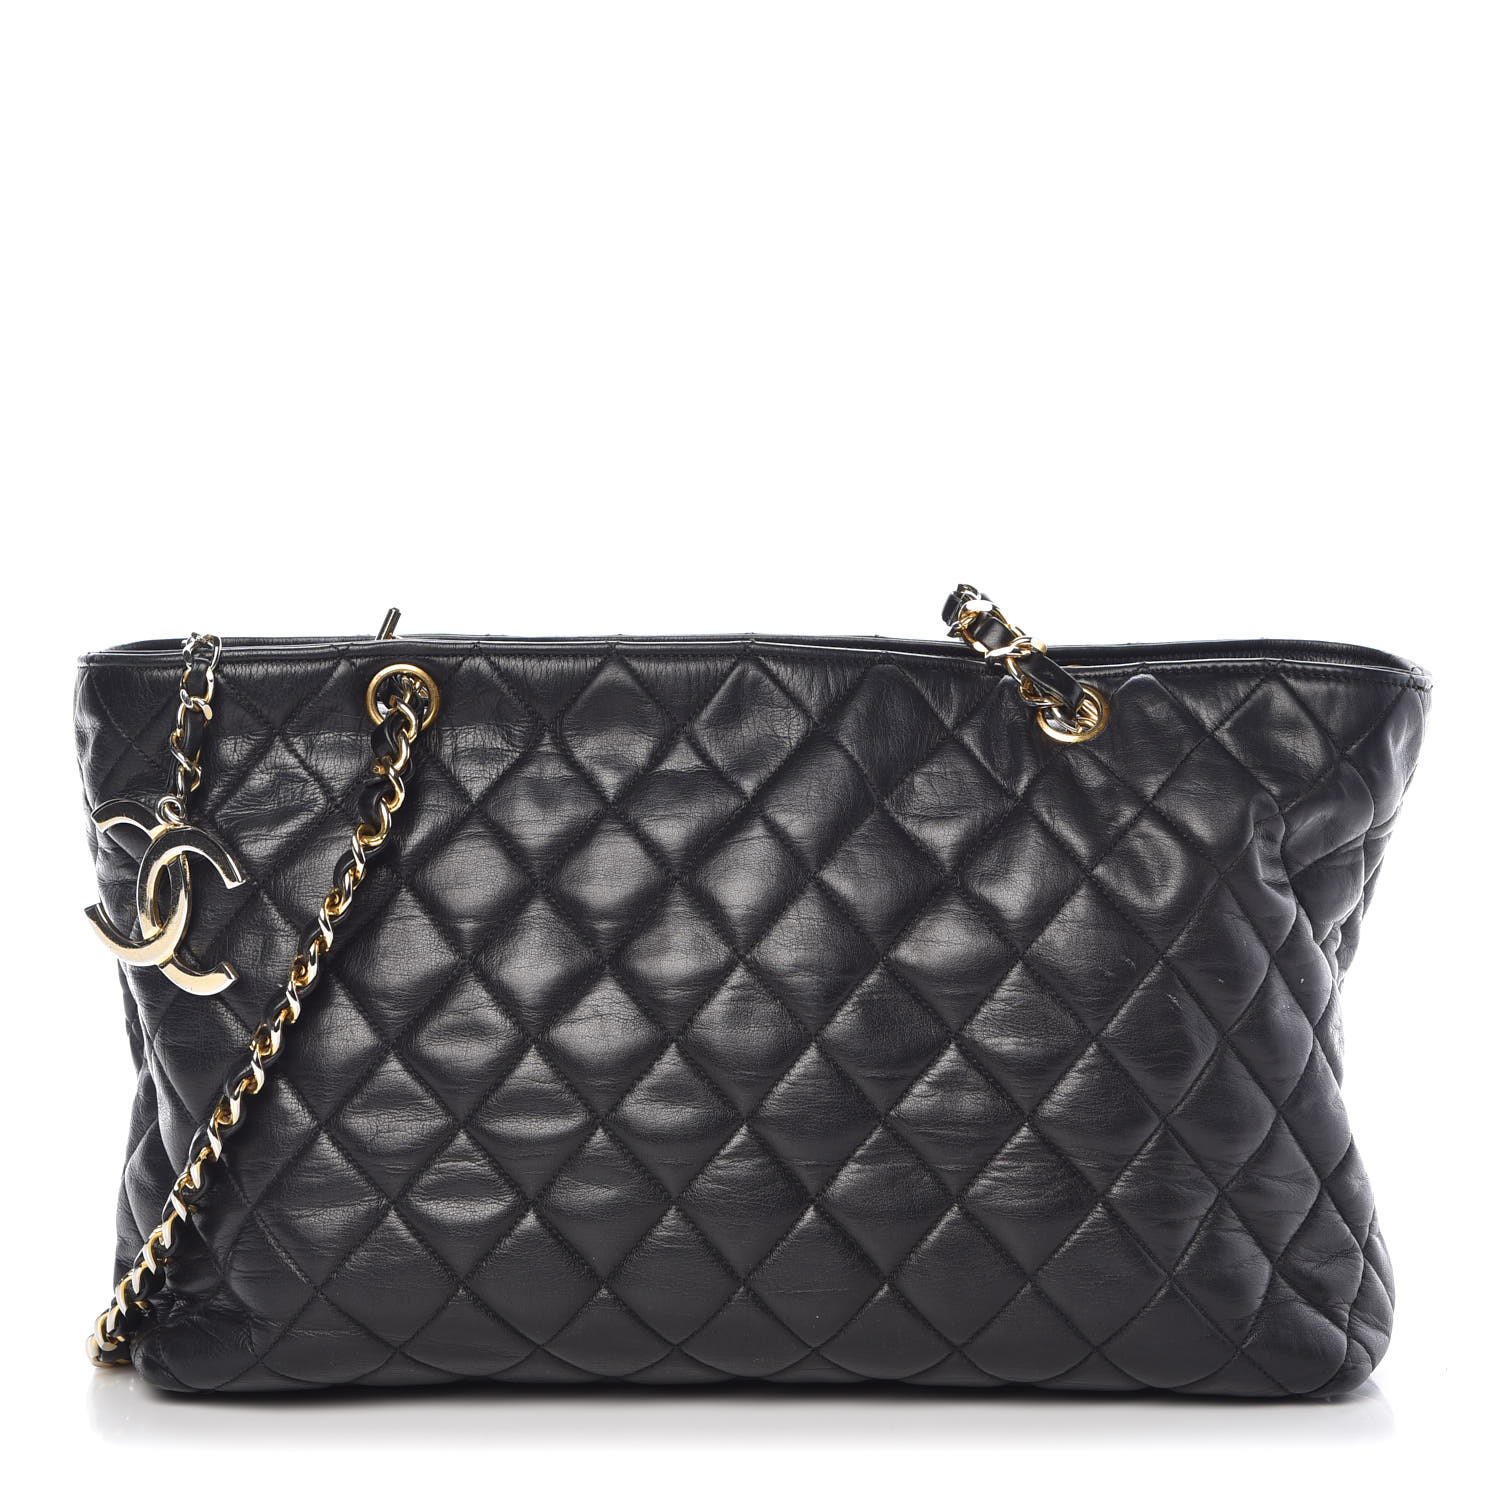 6255134d08 CHANEL Lambskin Quilted Tote Black